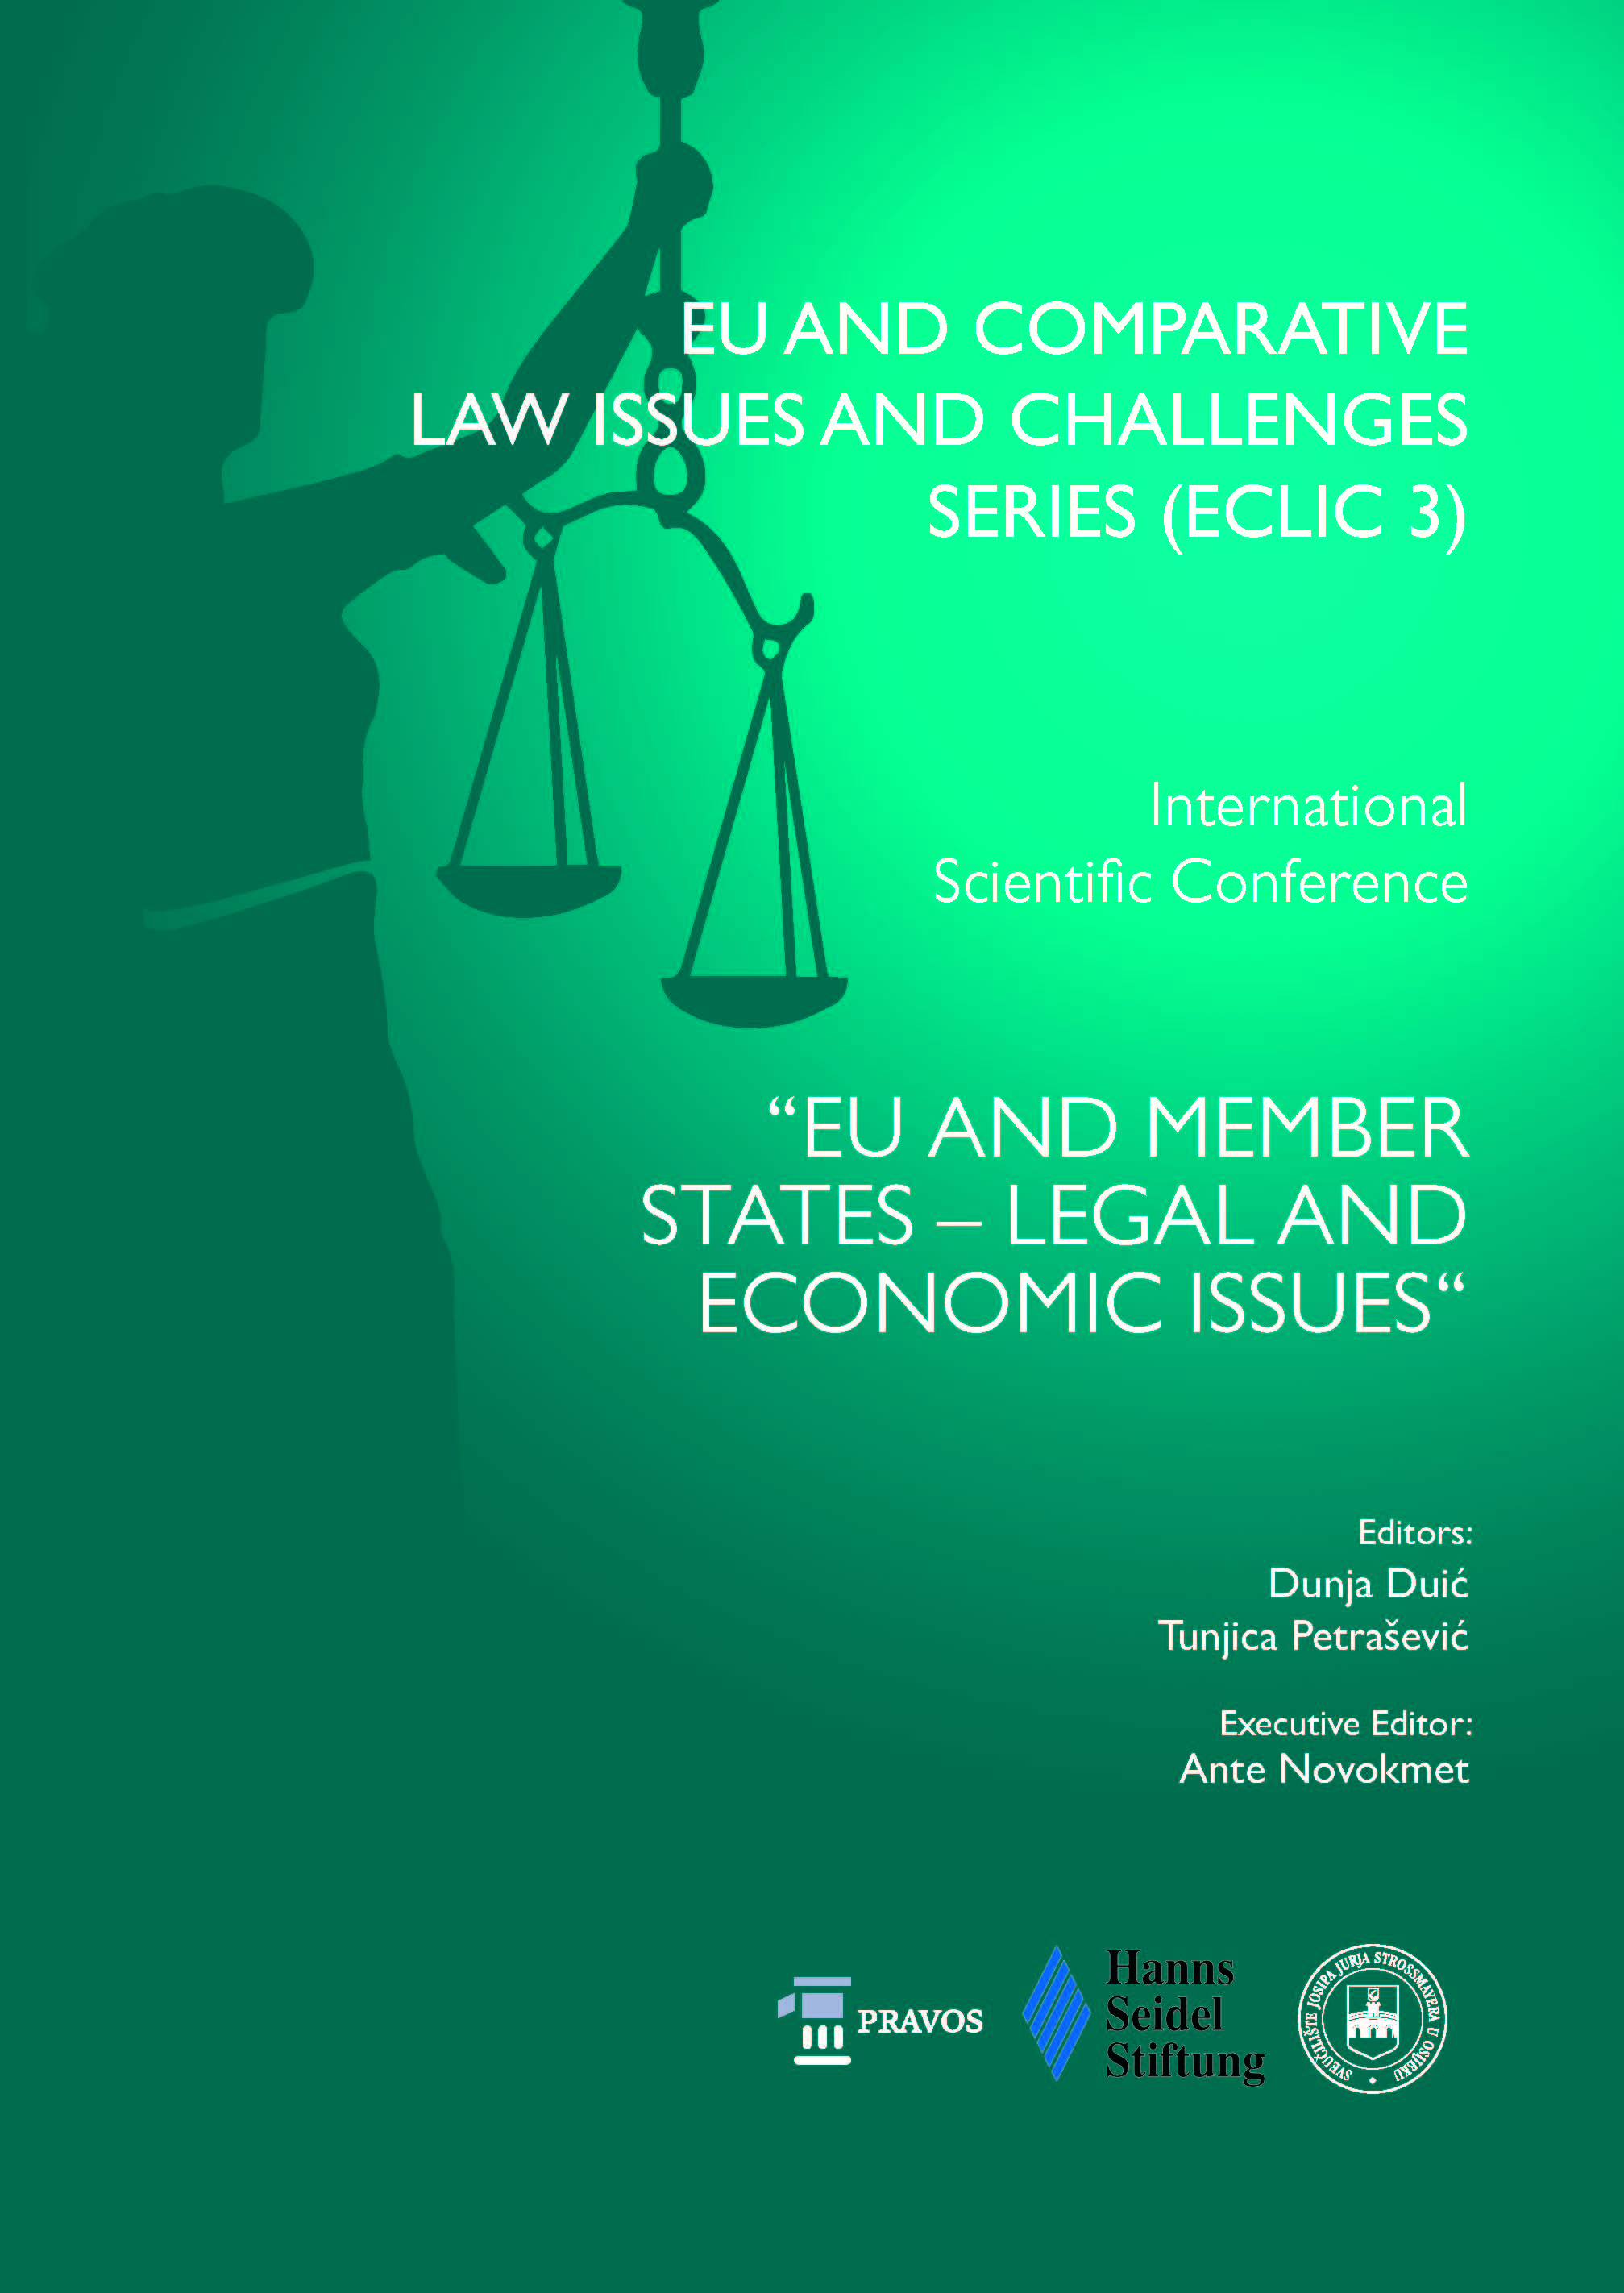 View Vol. 3 (2019): EU AND MEMBER STATES – LEGAL AND ECONOMIC ISSUES